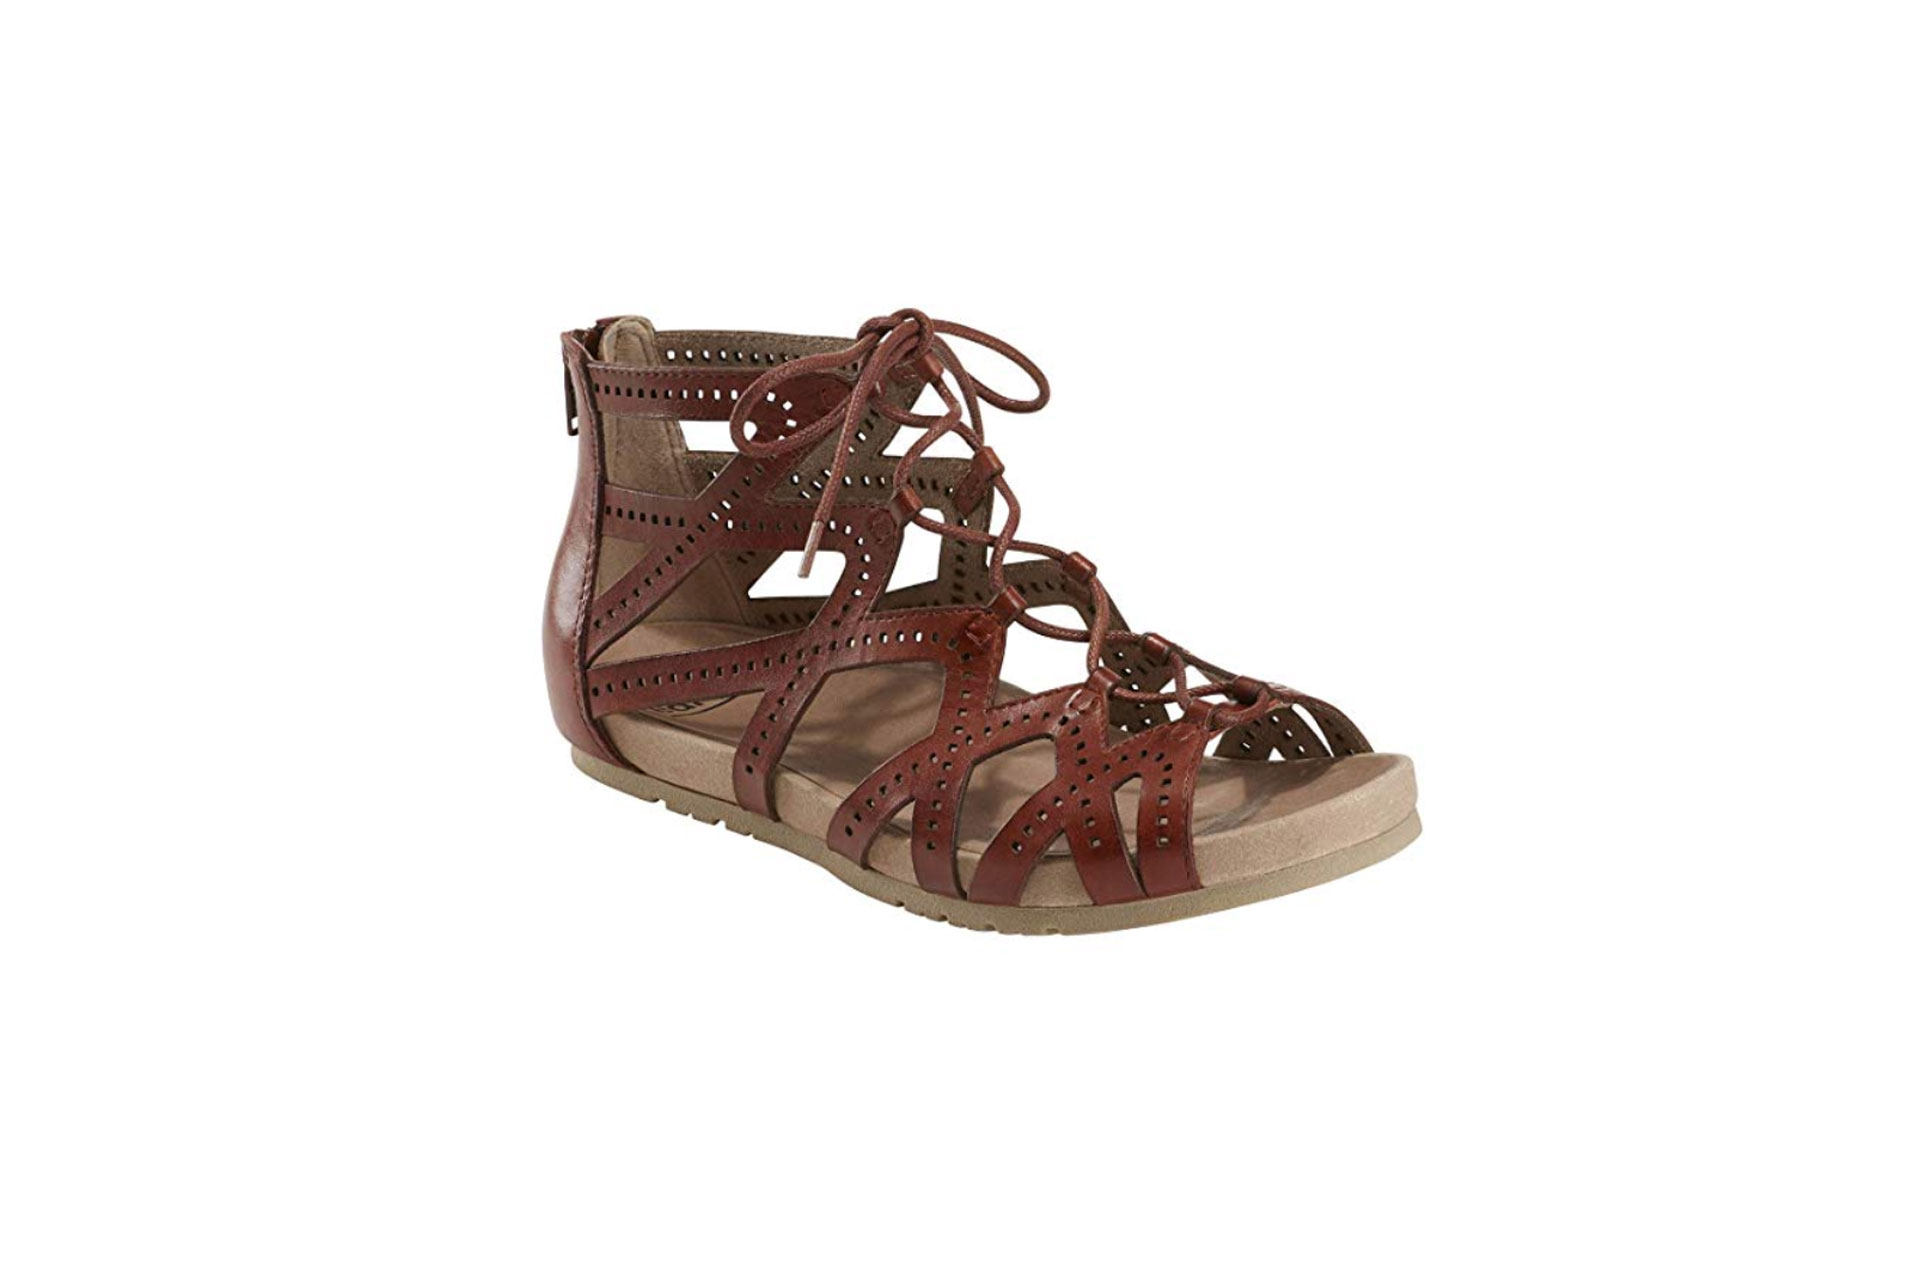 Earth Shoes Linden Gladiator Sandals; Courtesy of Amazon